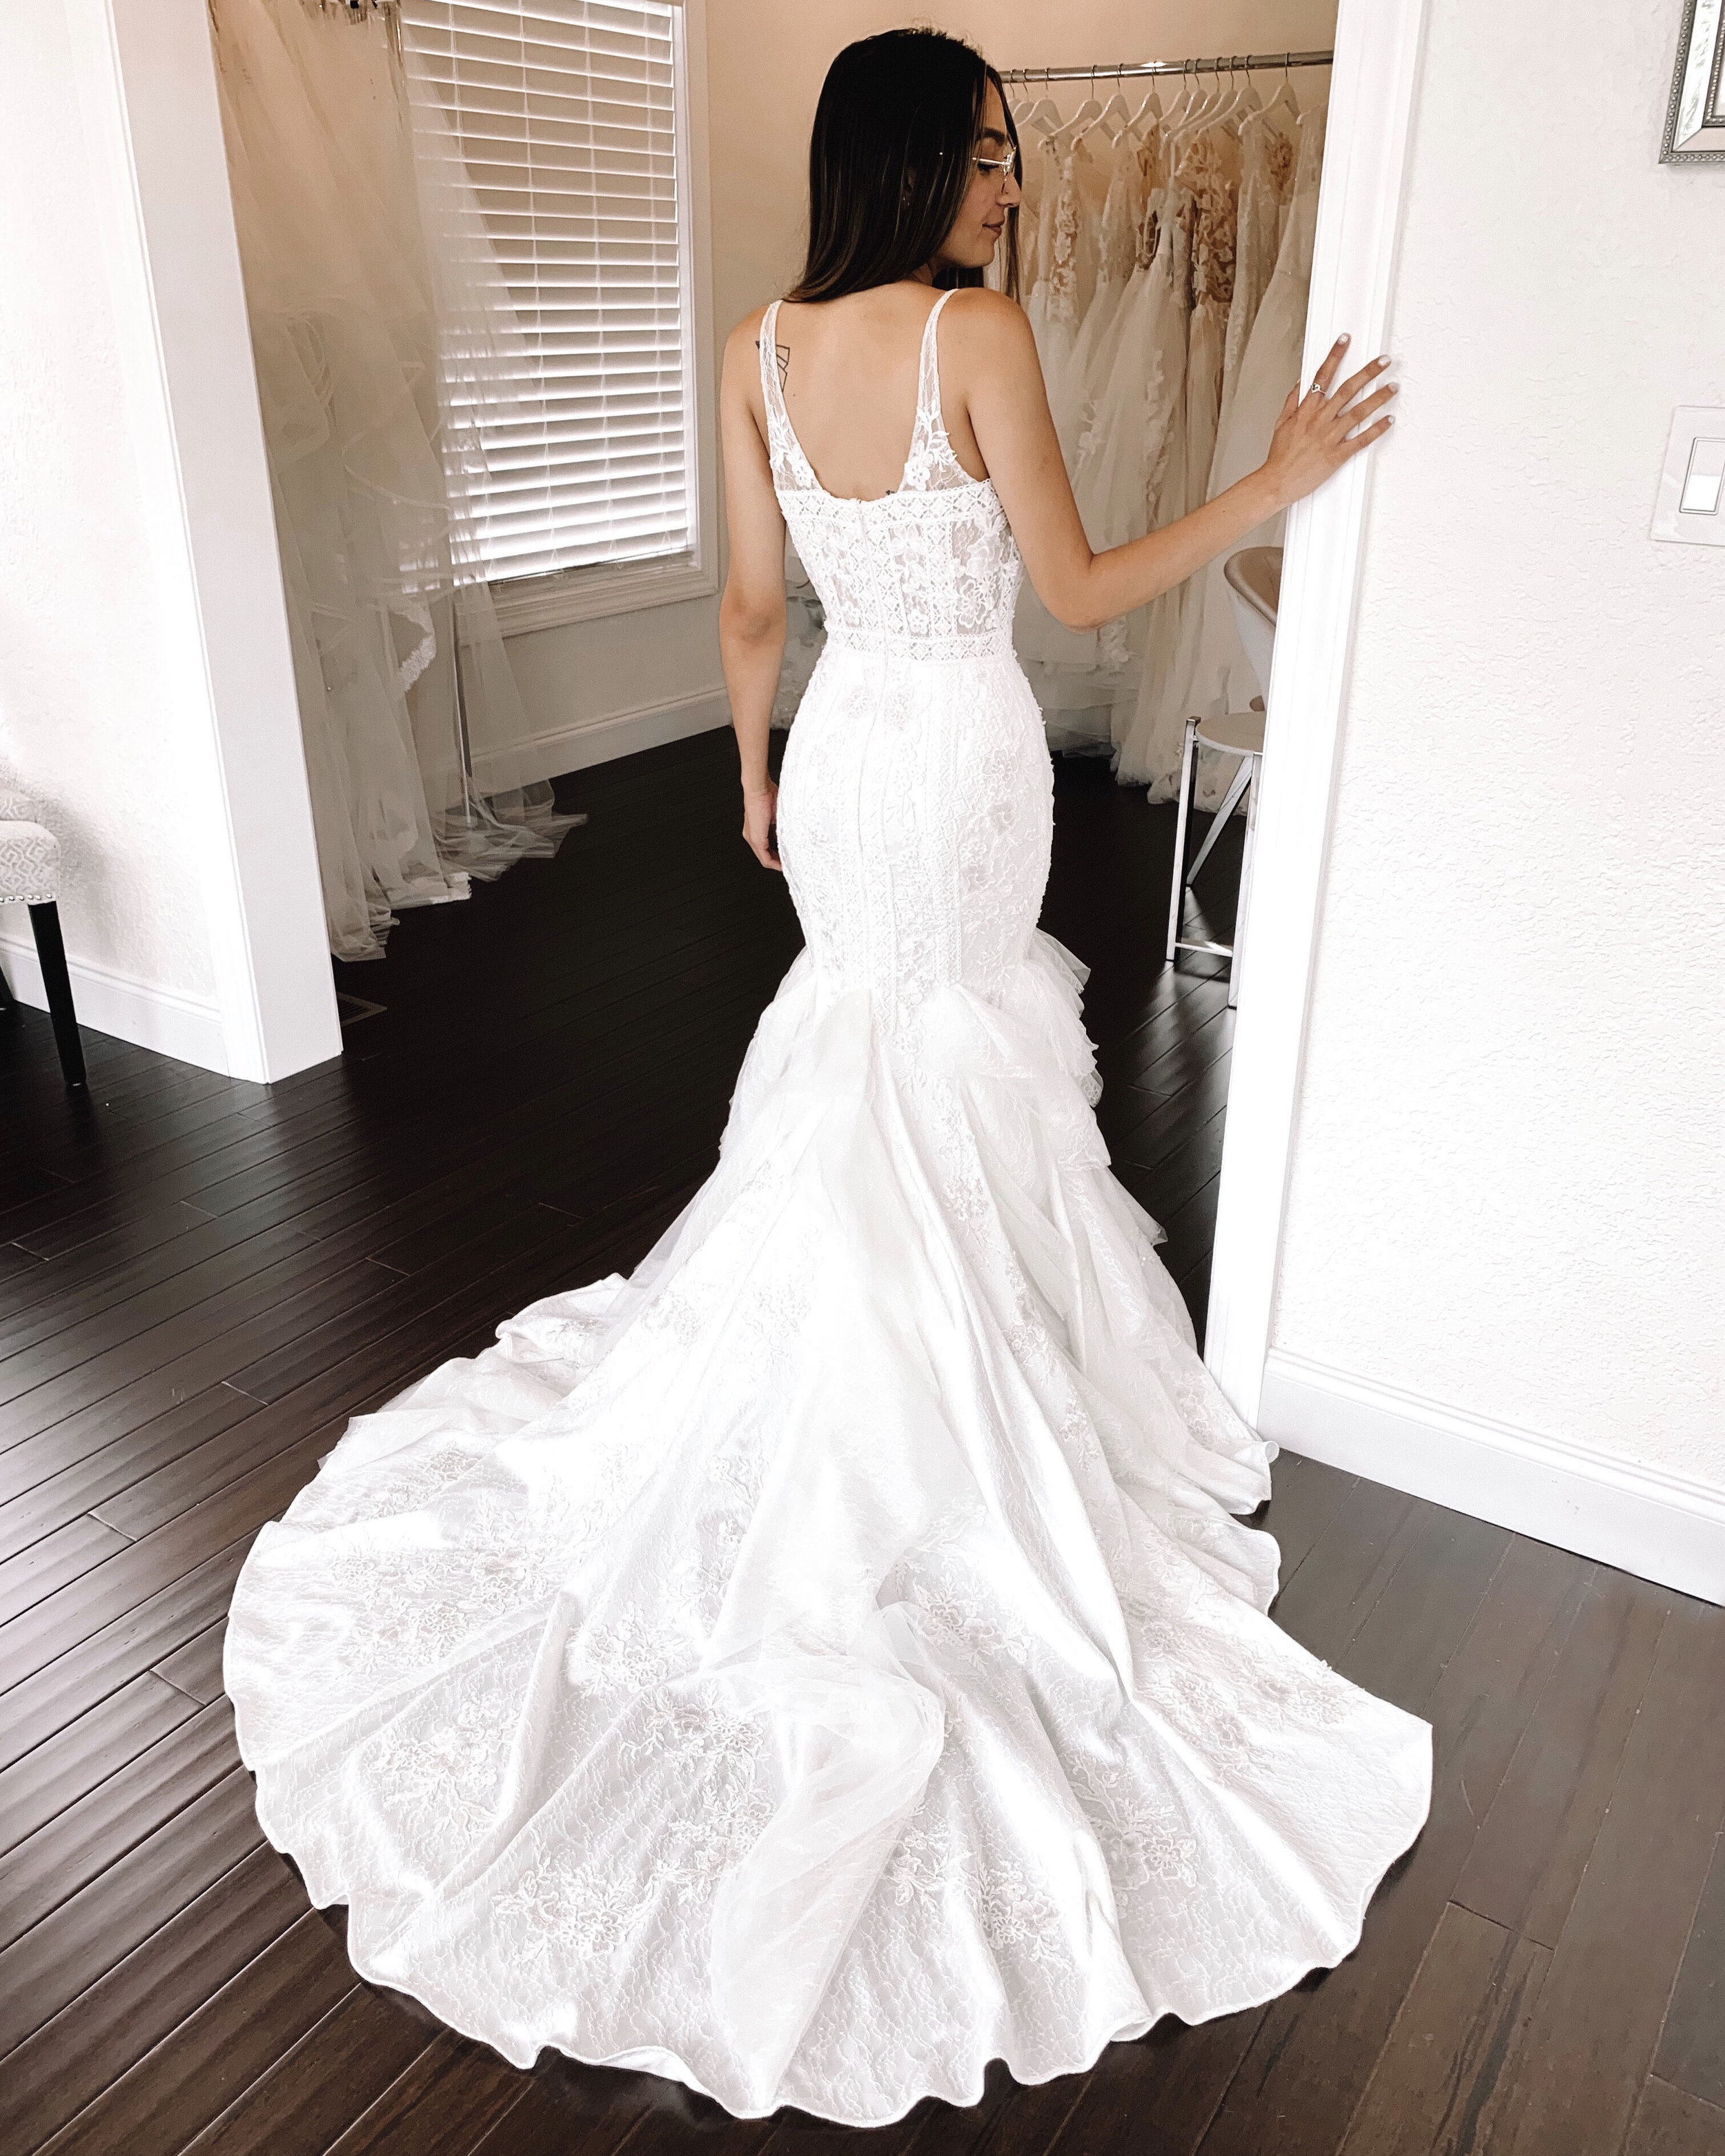 Time and Delivery - The time frame for ordering your bridal gown is 7 to 12 months to ensure enough time for delivery and fittings.In addition, several as new sample dresses are available for off-the rack purchase.We offer